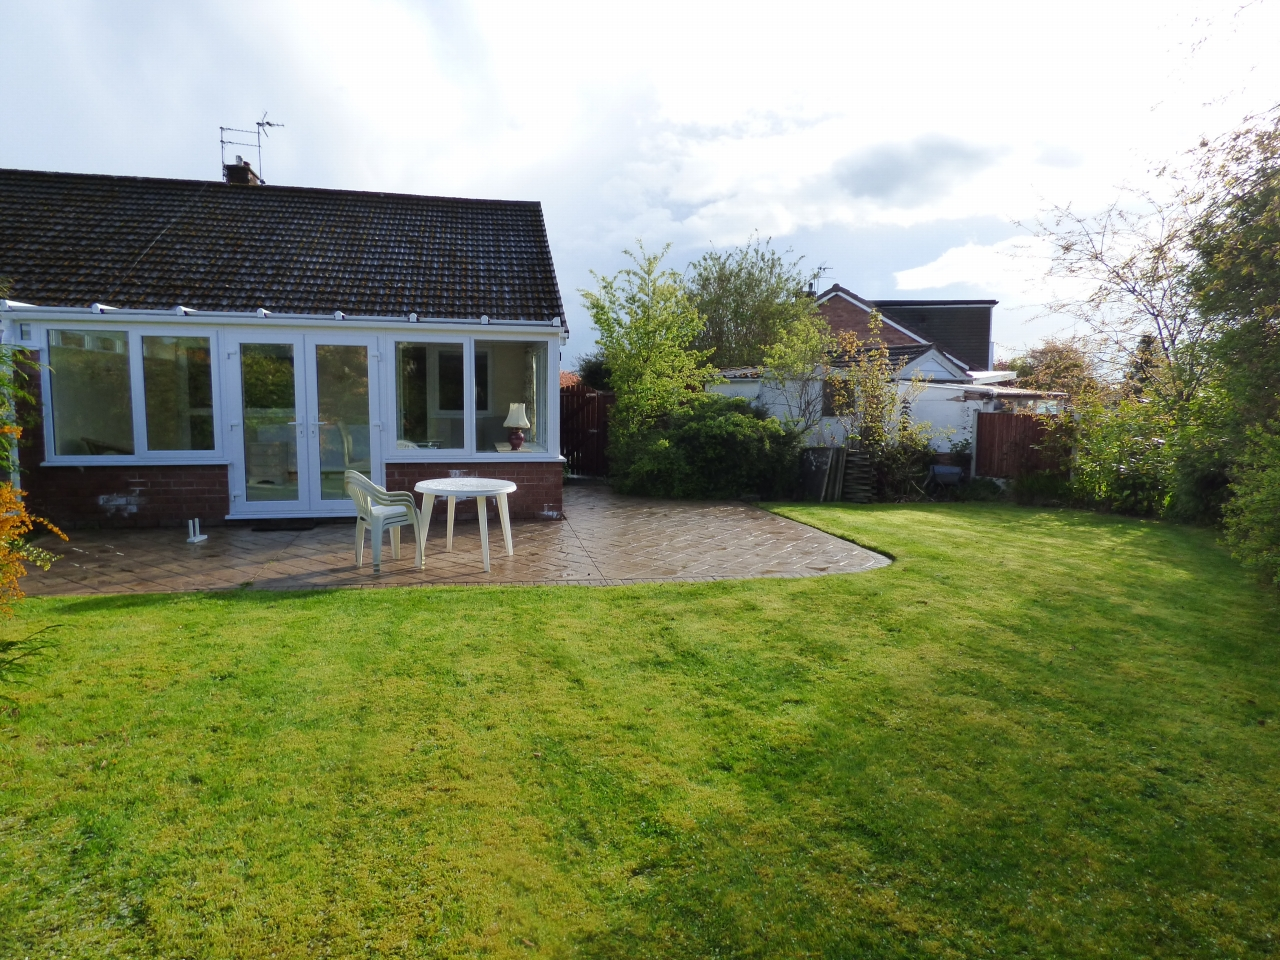 2 Bedroom Detached Bungalow Bungalow For Sale - Image 9